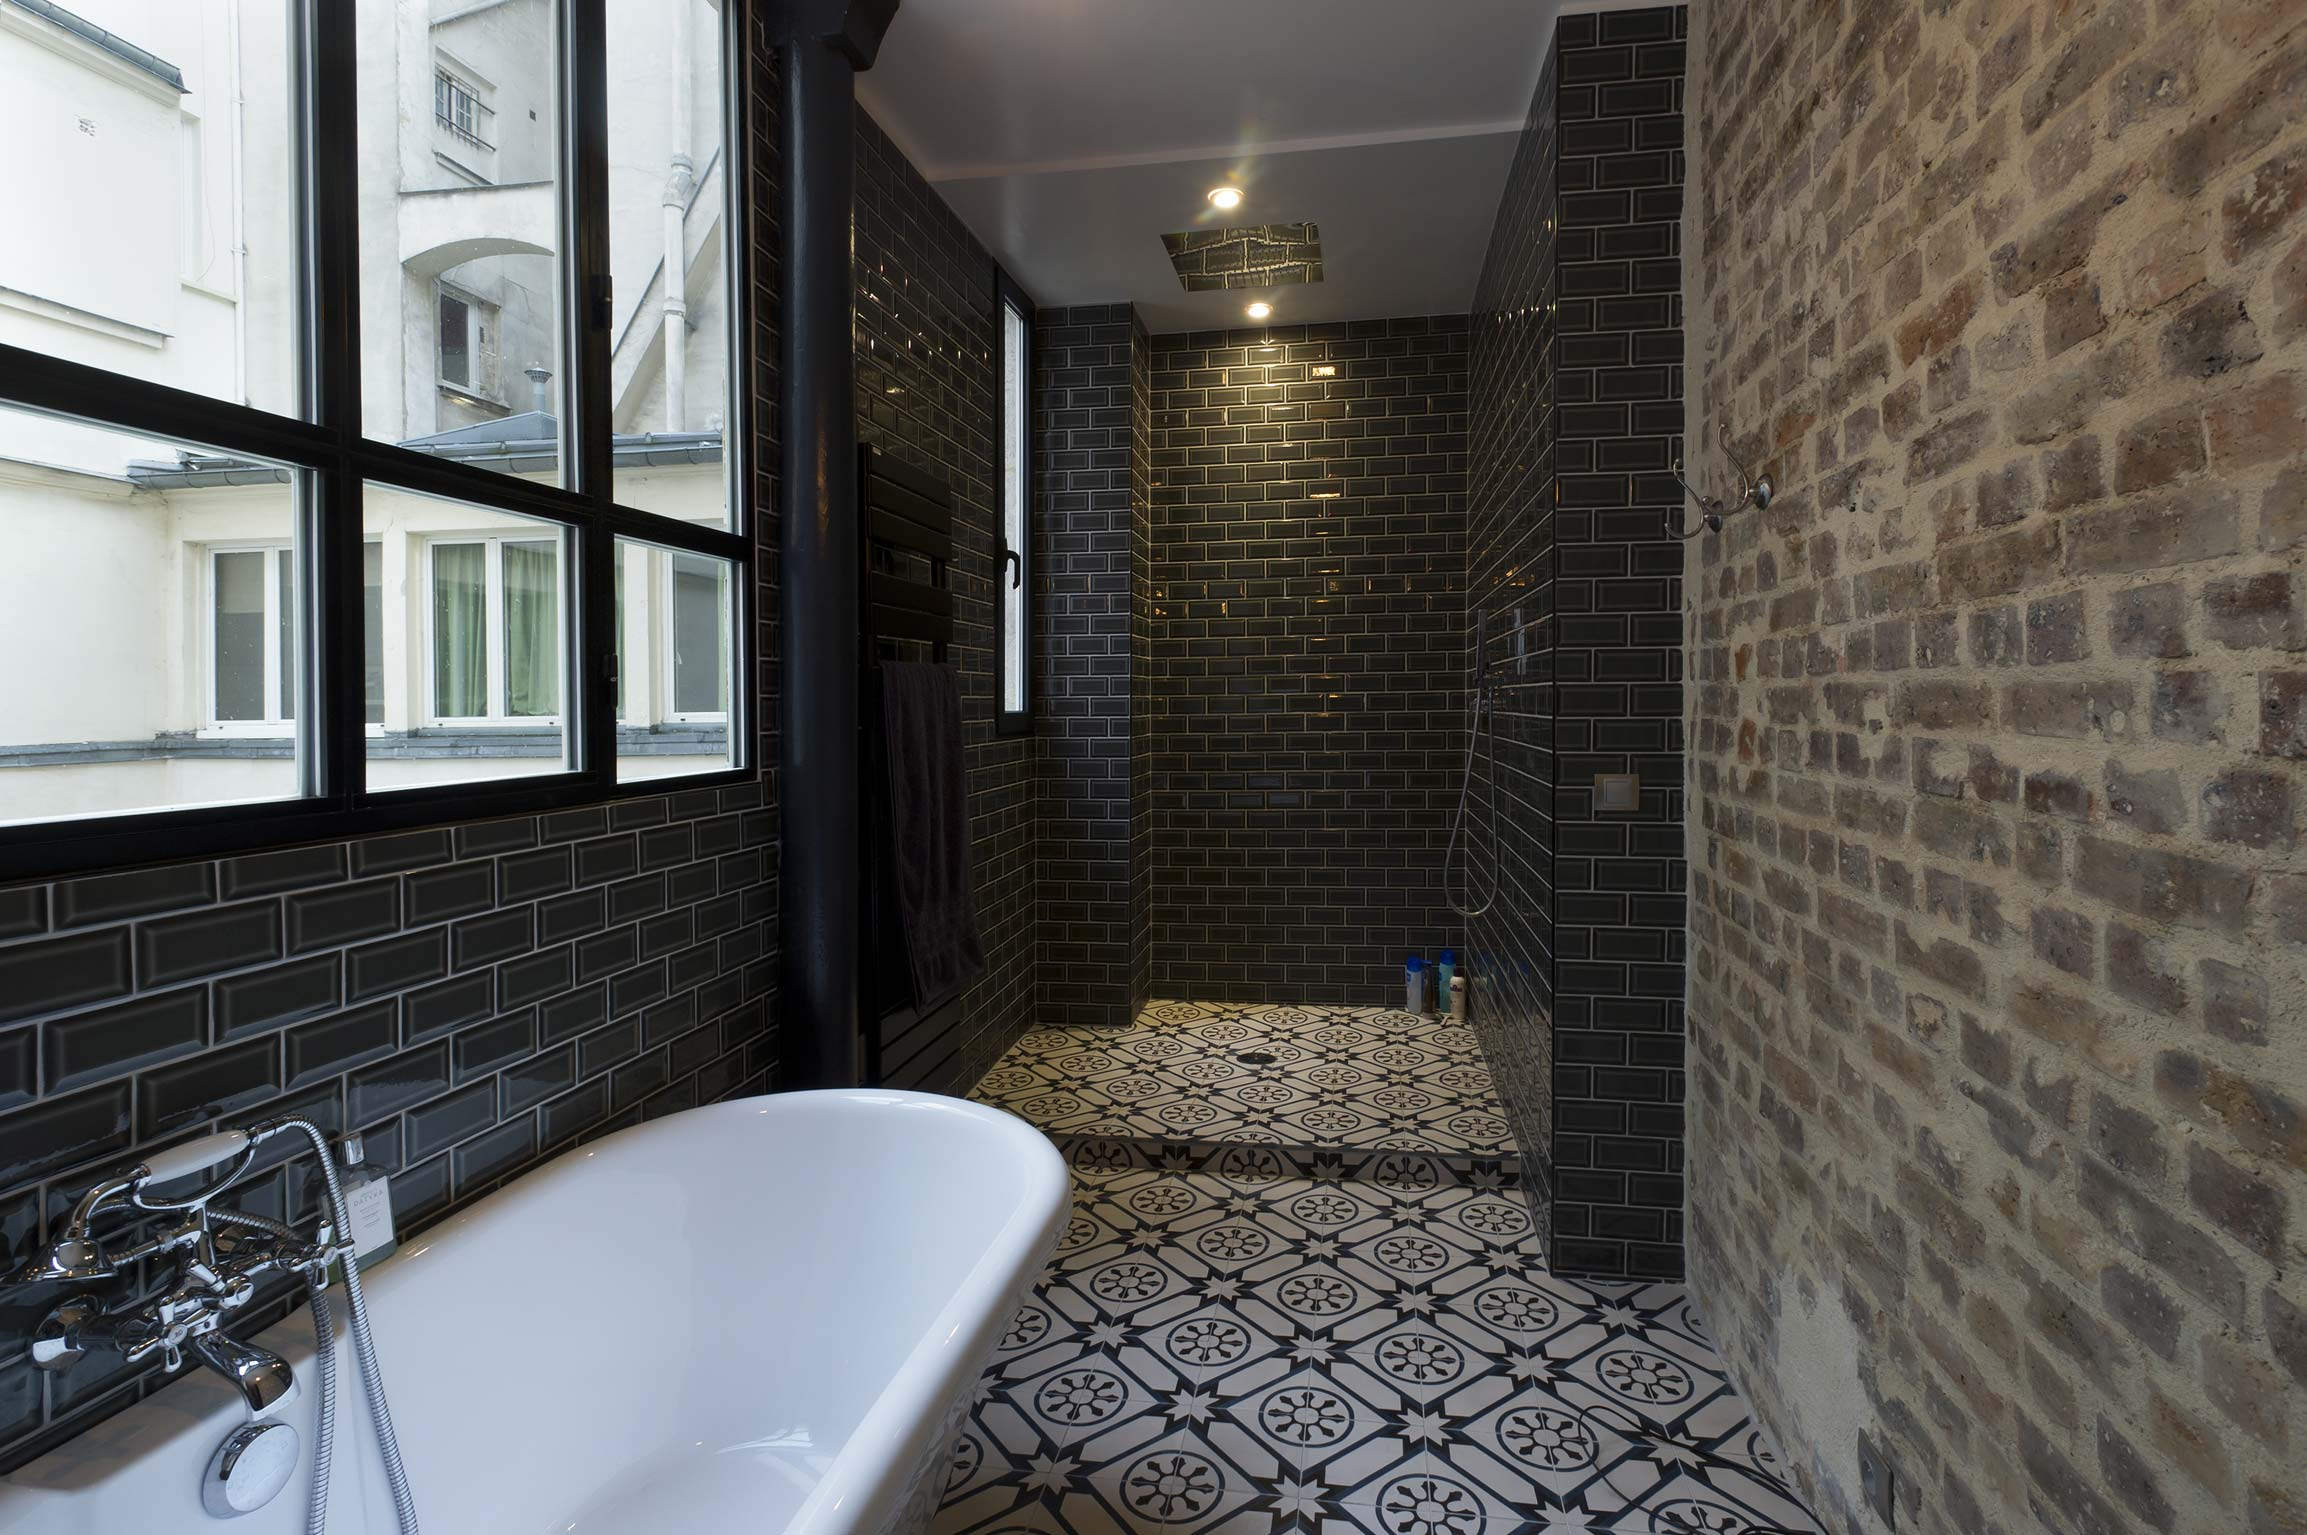 Douche l 39 italienne en carreau de ciment for Idee salle de bain carreau ciment